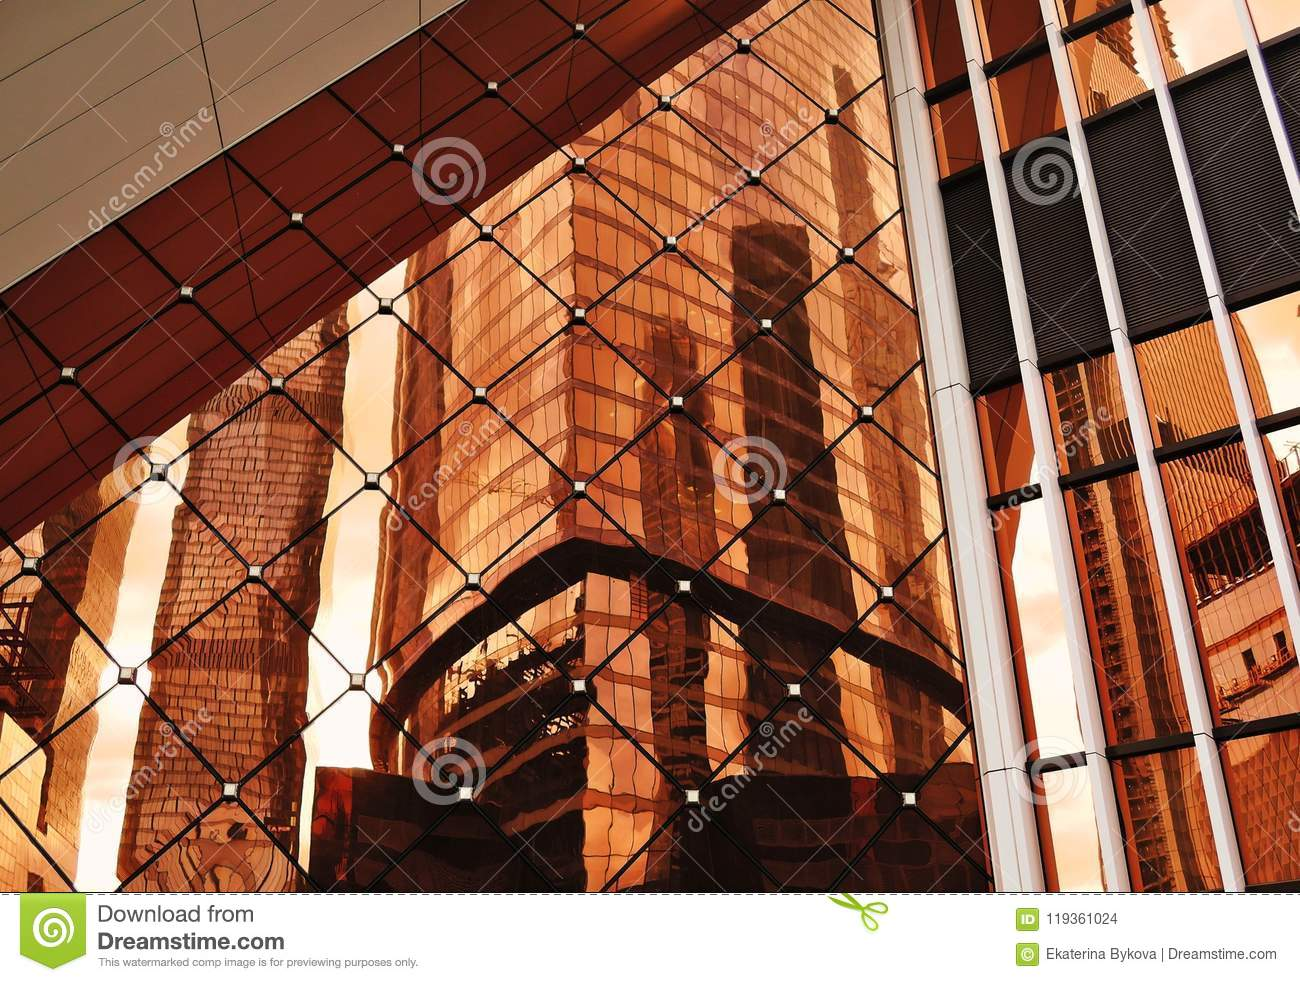 Abstract photo of different geometric shapes, skyscrapers glass window reflection.